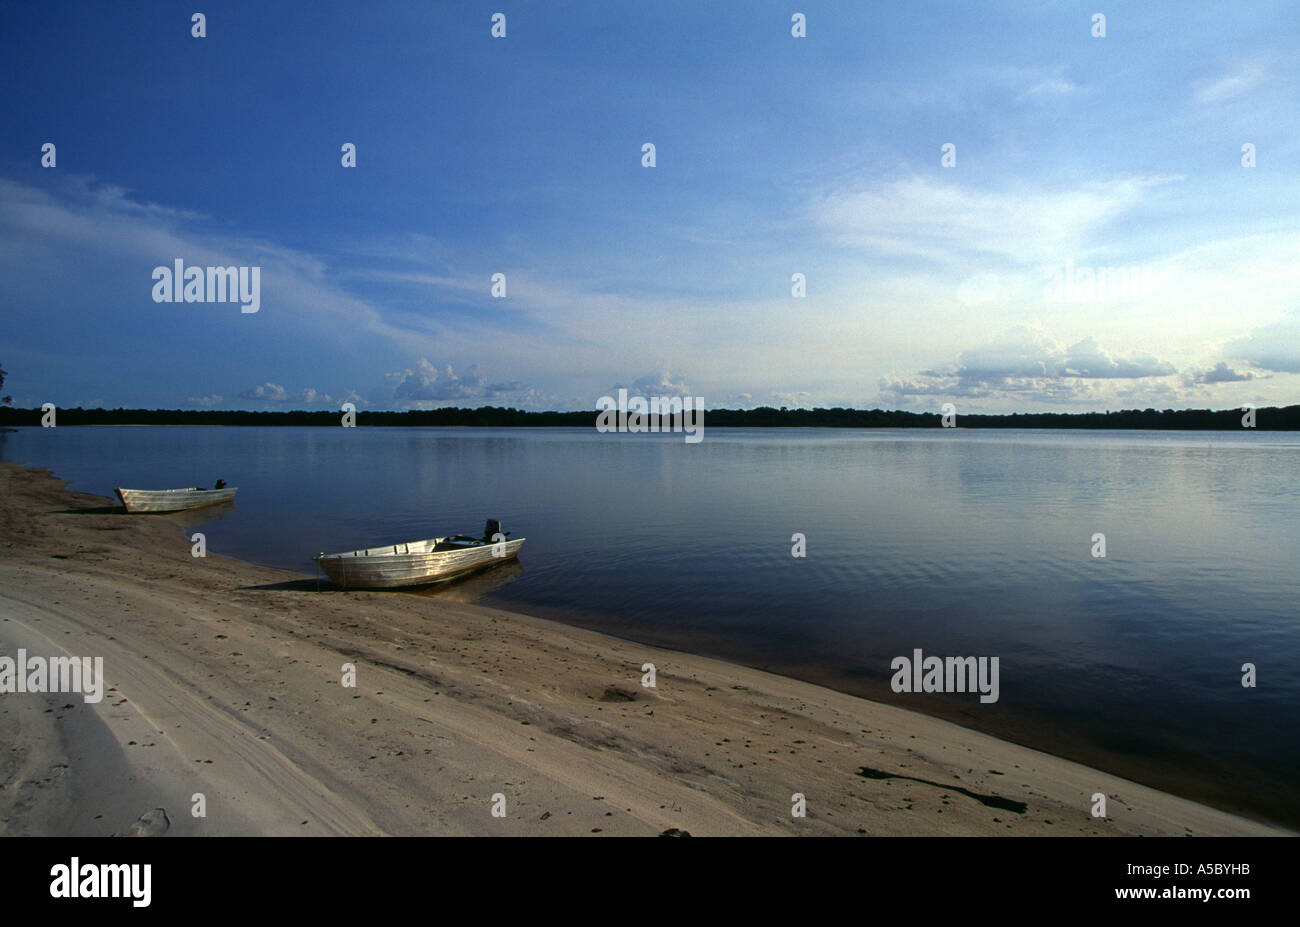 TWO BOATS MOORED ON THE RIVER BANK ON RIO NEGRO BRAZIL - Stock Image